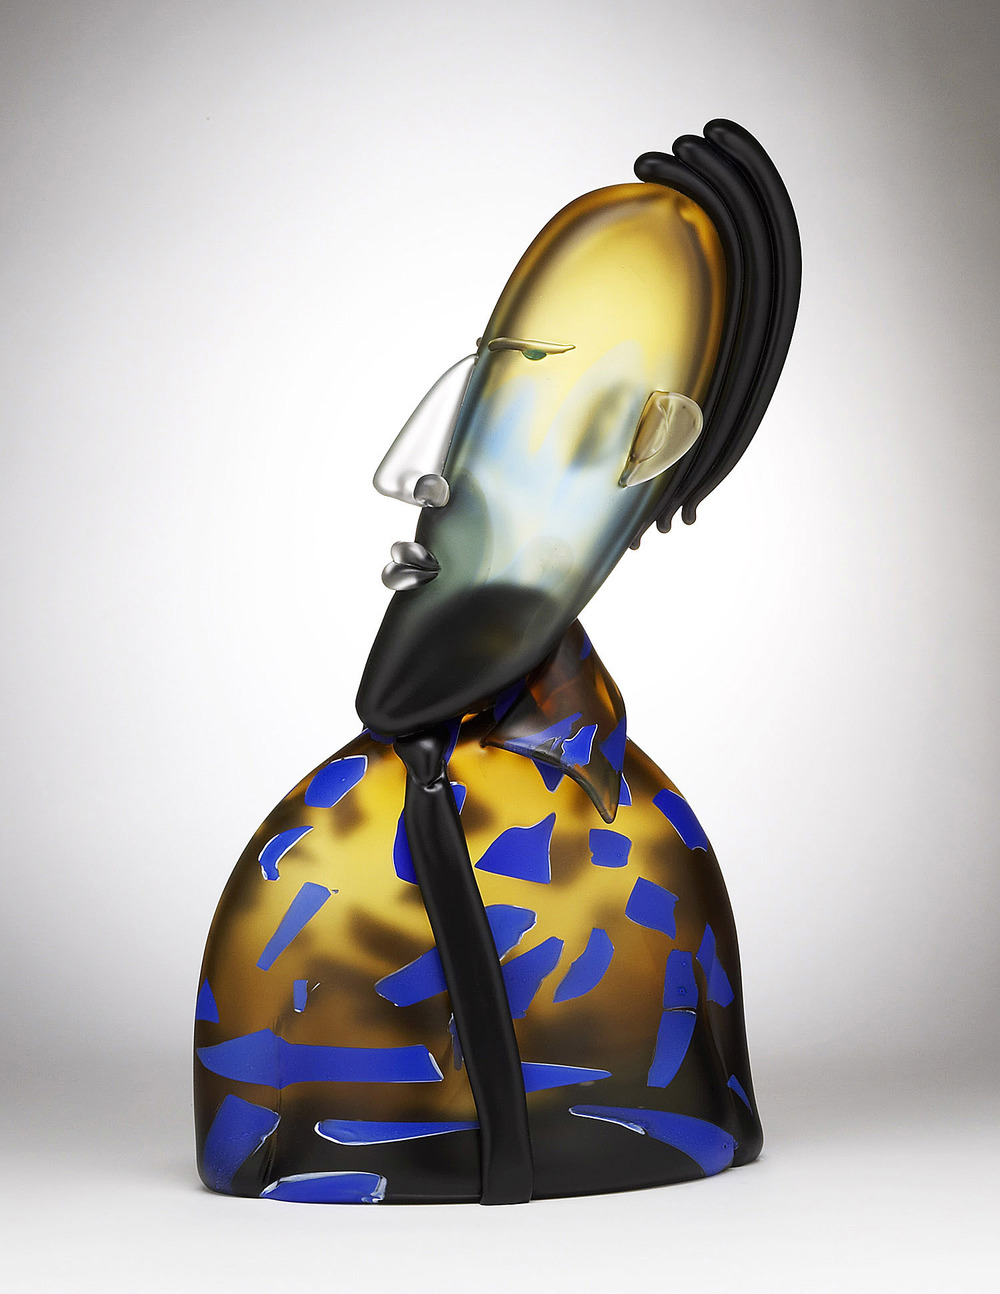 Impostor   2005. Blown glass. 26¾ x 15 x 7½""